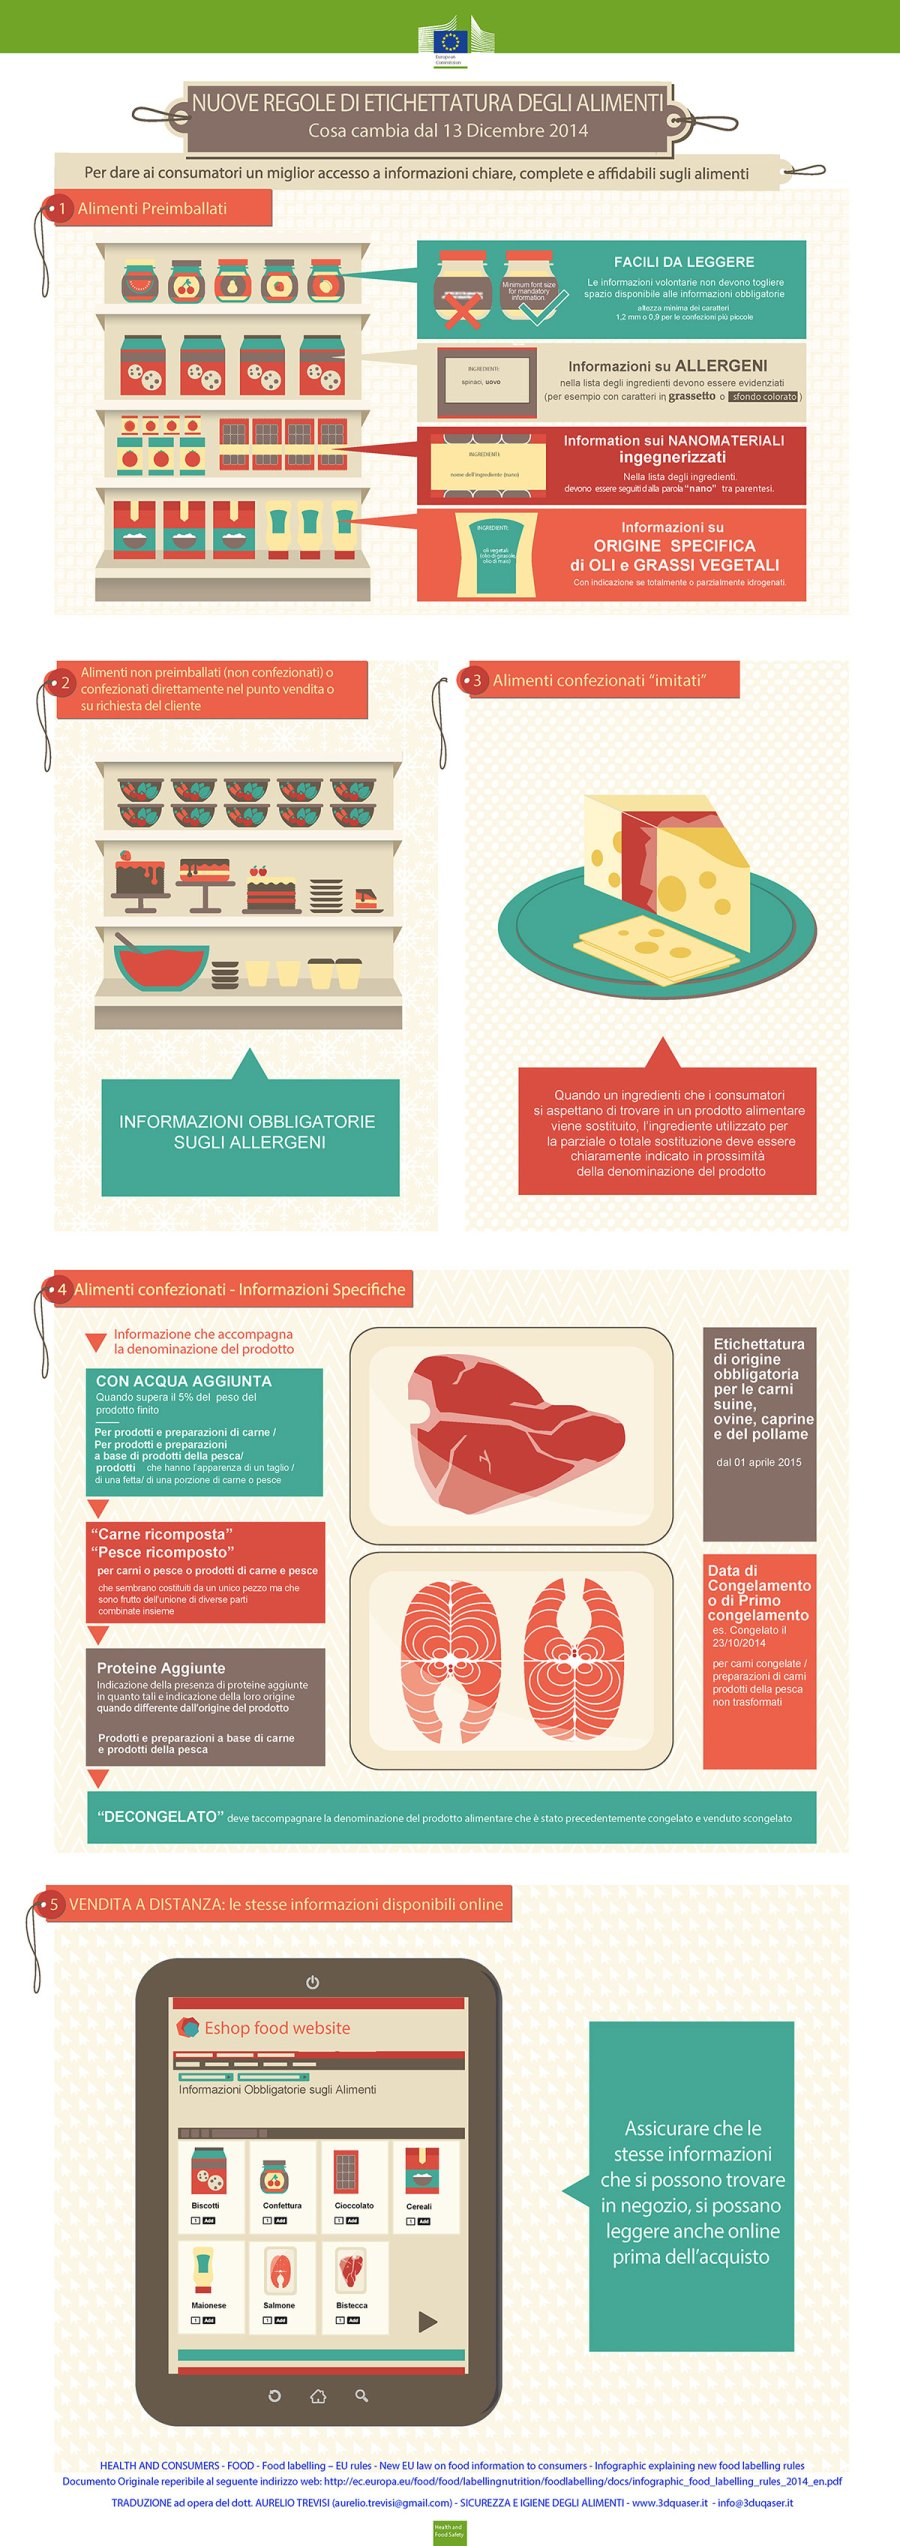 infographic_food_labelling_rules_2014_it